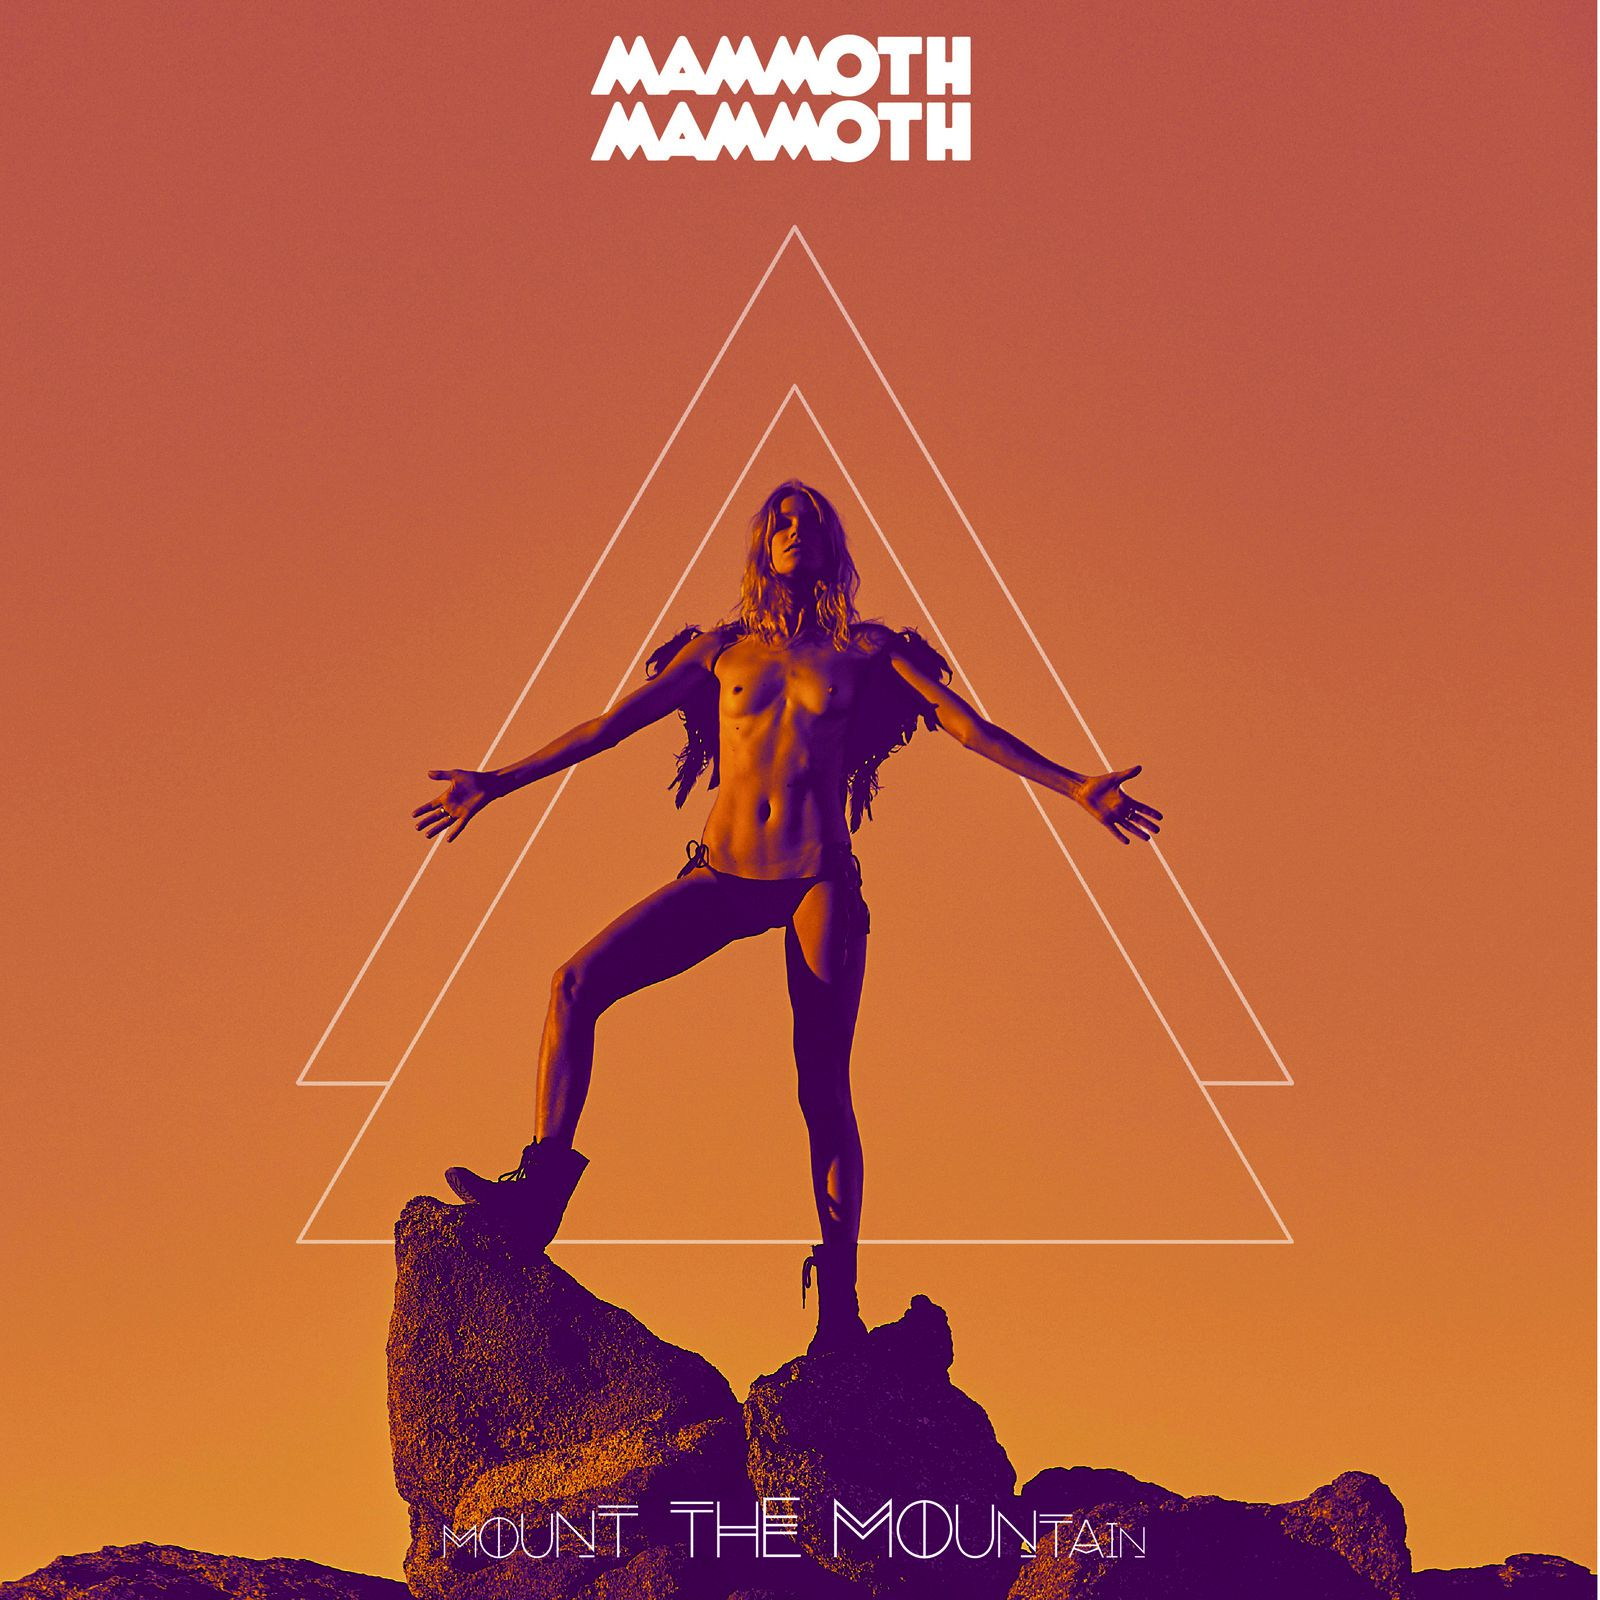 CD review MAMMOTH MAMMOTH &quot&#x3B;Mount the Mountain&quot&#x3B;